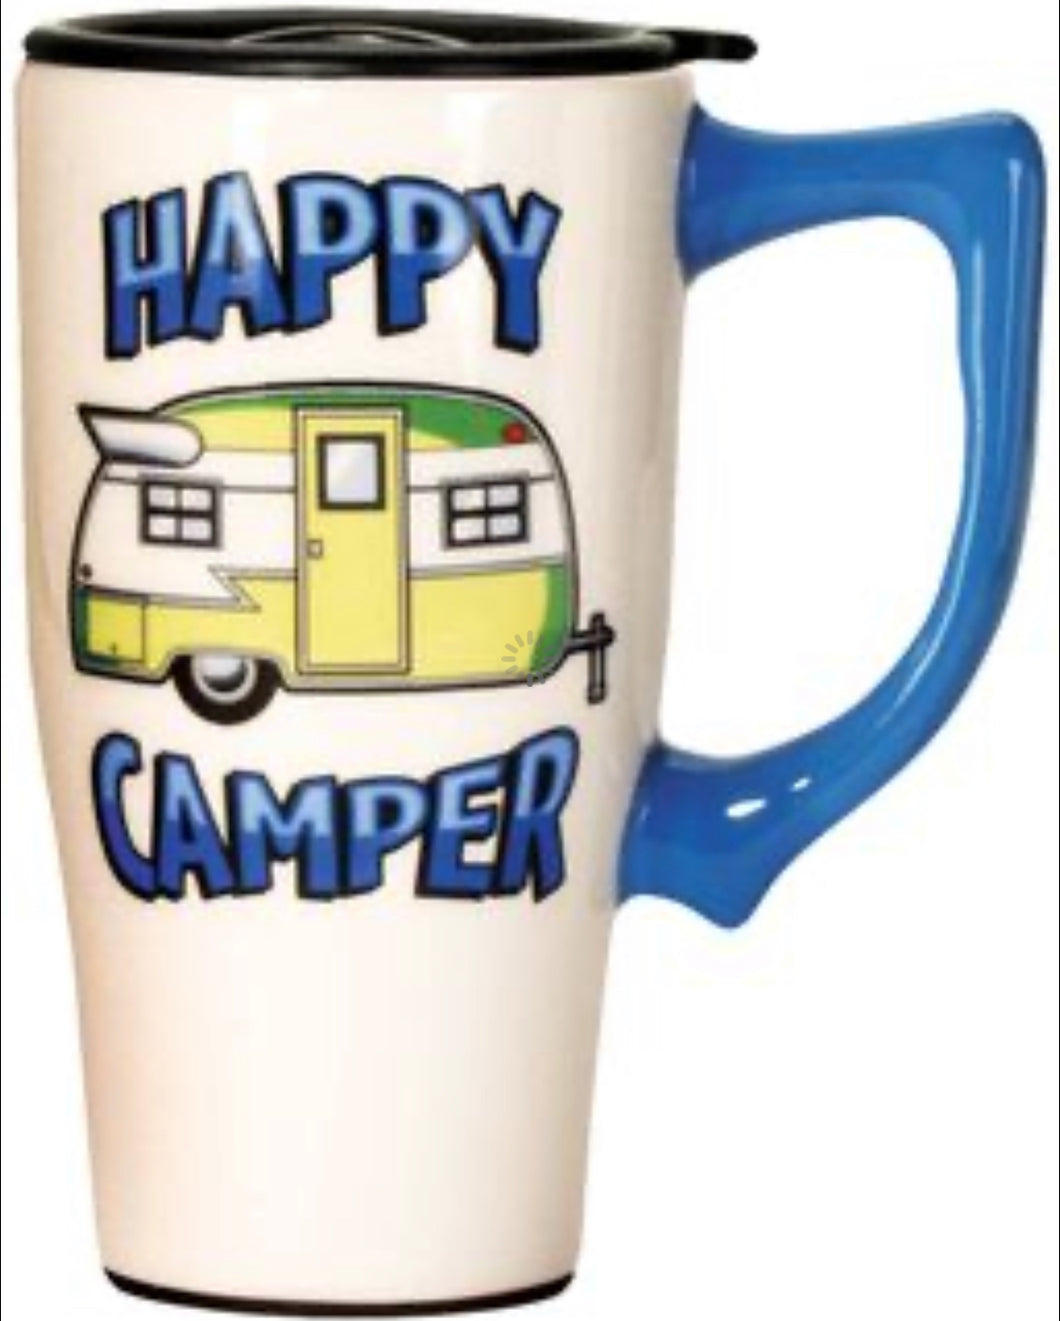 Happy Camper Ceramic Travel Mug